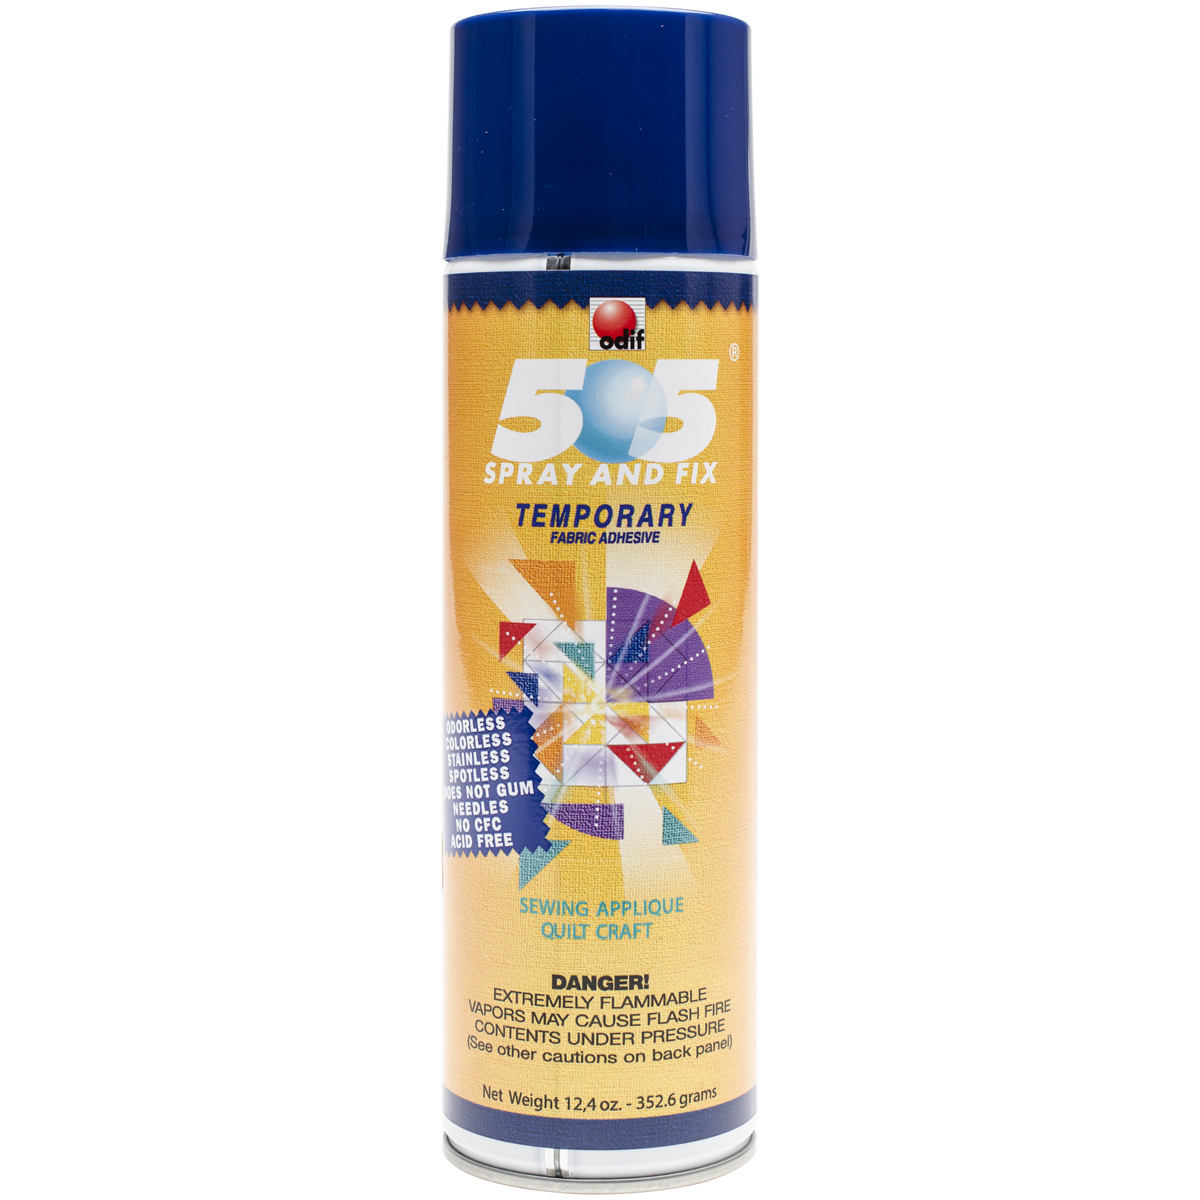 505 Spray & Fix Temporary Fabric Adhesive-10.93oz